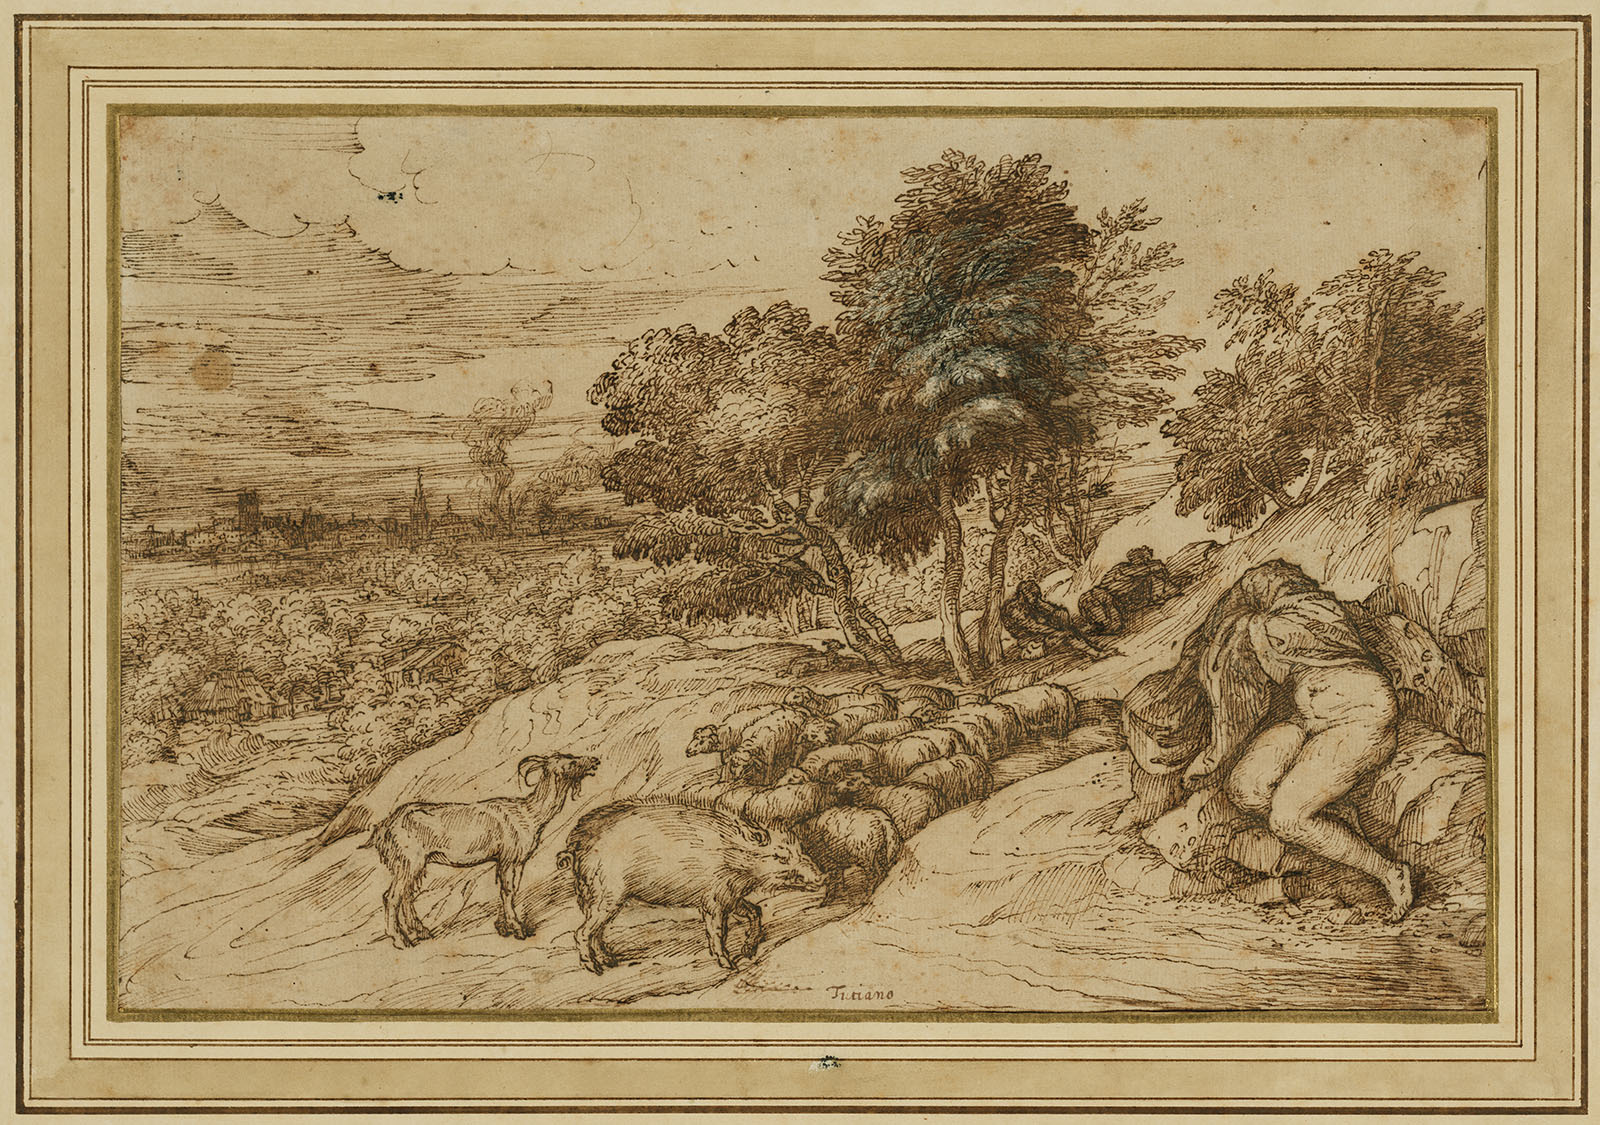 A hillside overlooking a distant town. A nude person sits on a rock with a blanket over their head and torso. Beside them is a herd of sheep, a boar, and a goat. Two people lie in the shade of several trees just beyond.